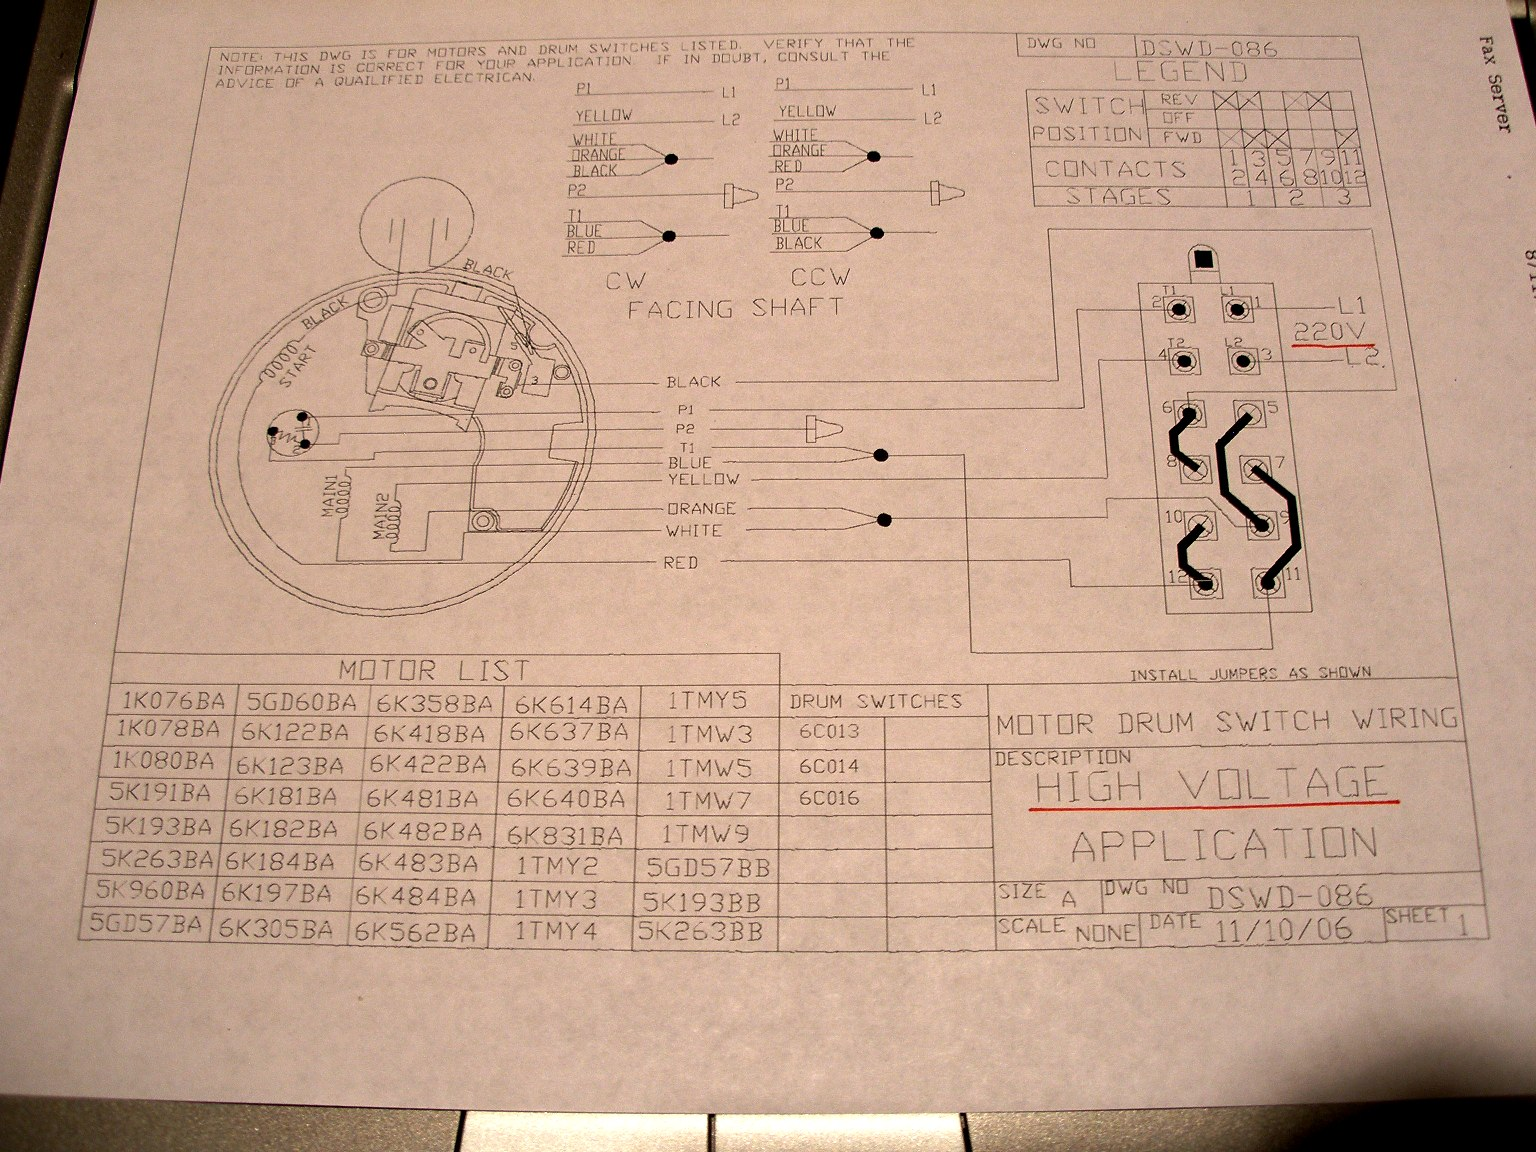 2011 08 11_193044_grainger_dayton_high_voltage_diagram the motor on my boat lift quit it was a ao motor, open ended and bremas series a1700 wiring diagram at fashall.co